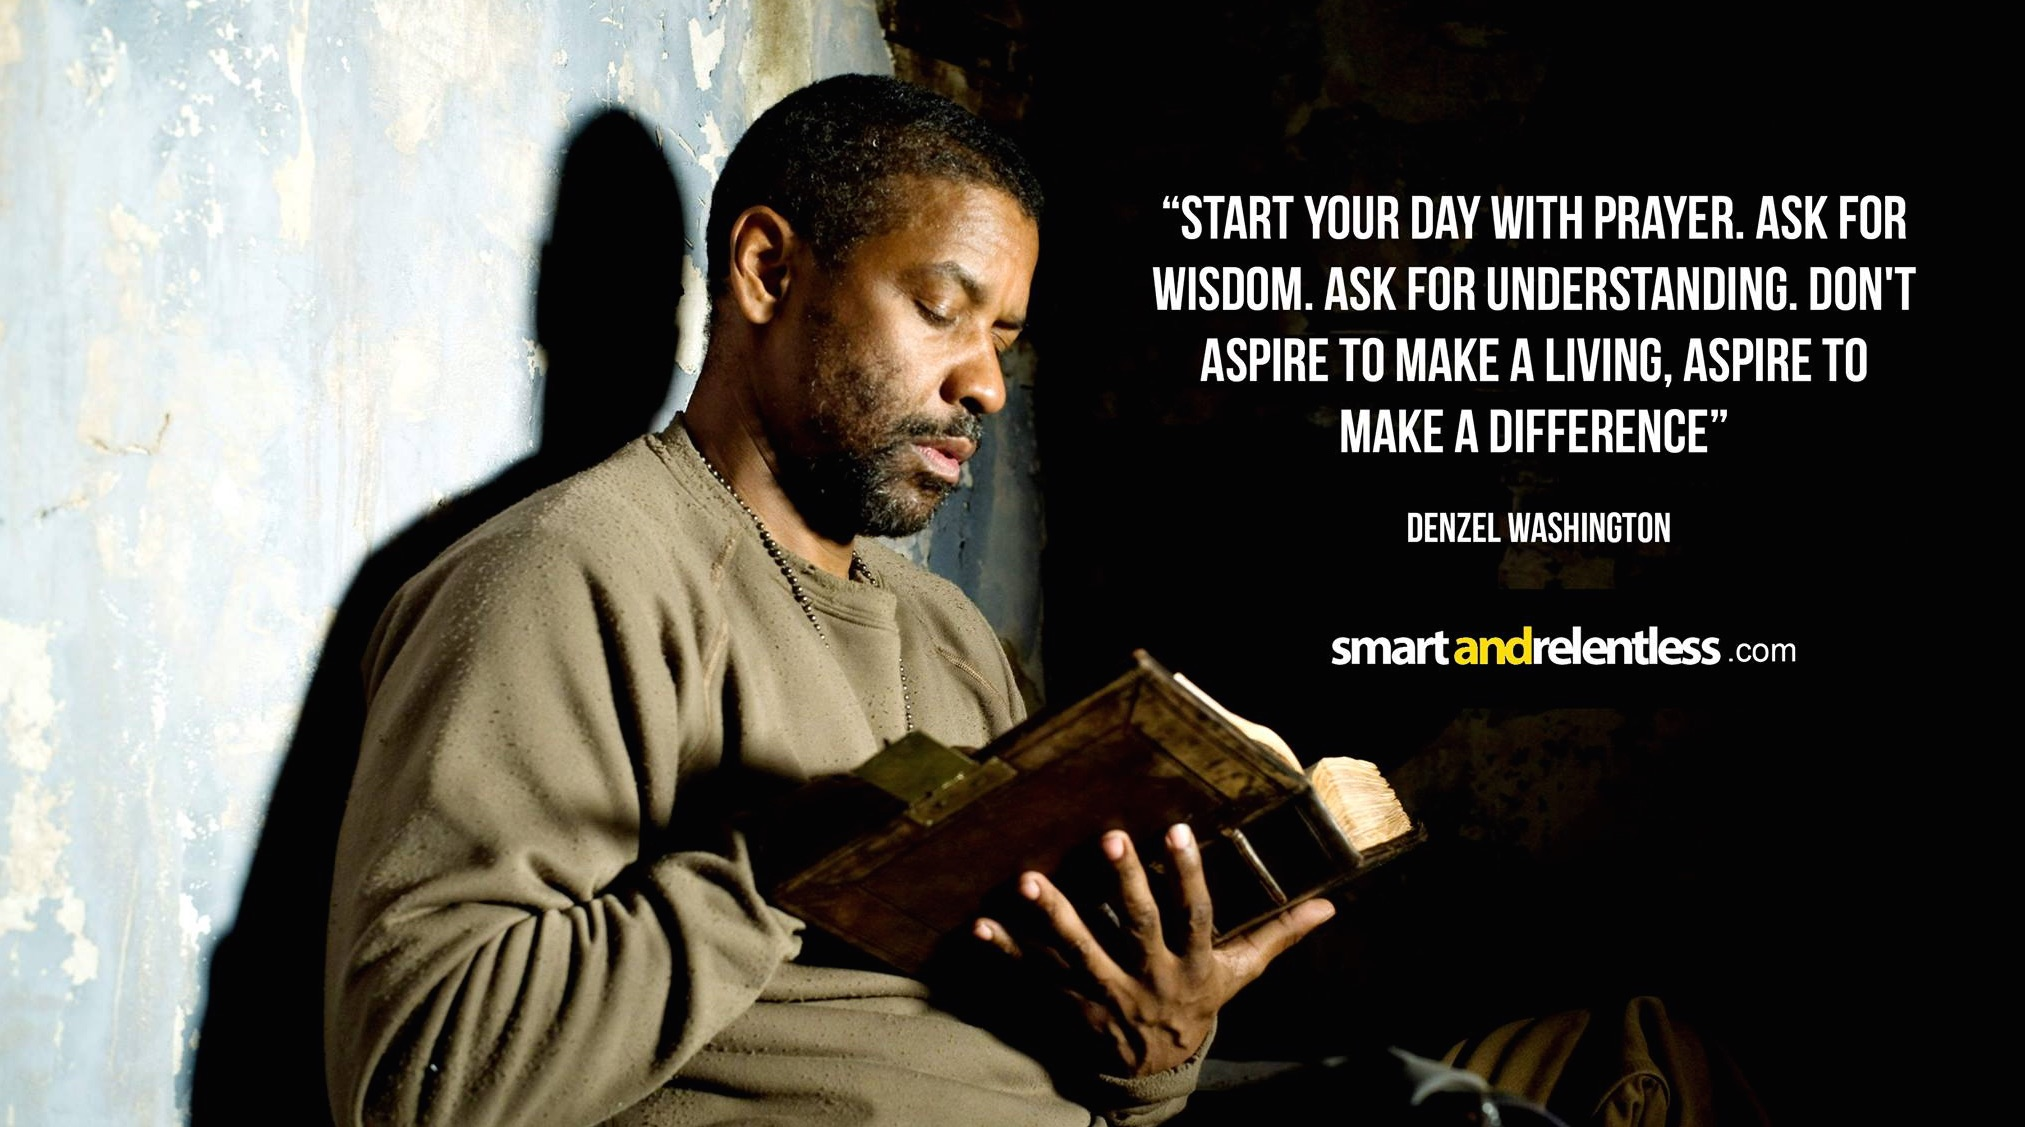 Denzel Washington Quotes | 30 Inspirational Denzel Washington Quotes The Power Of Faith And